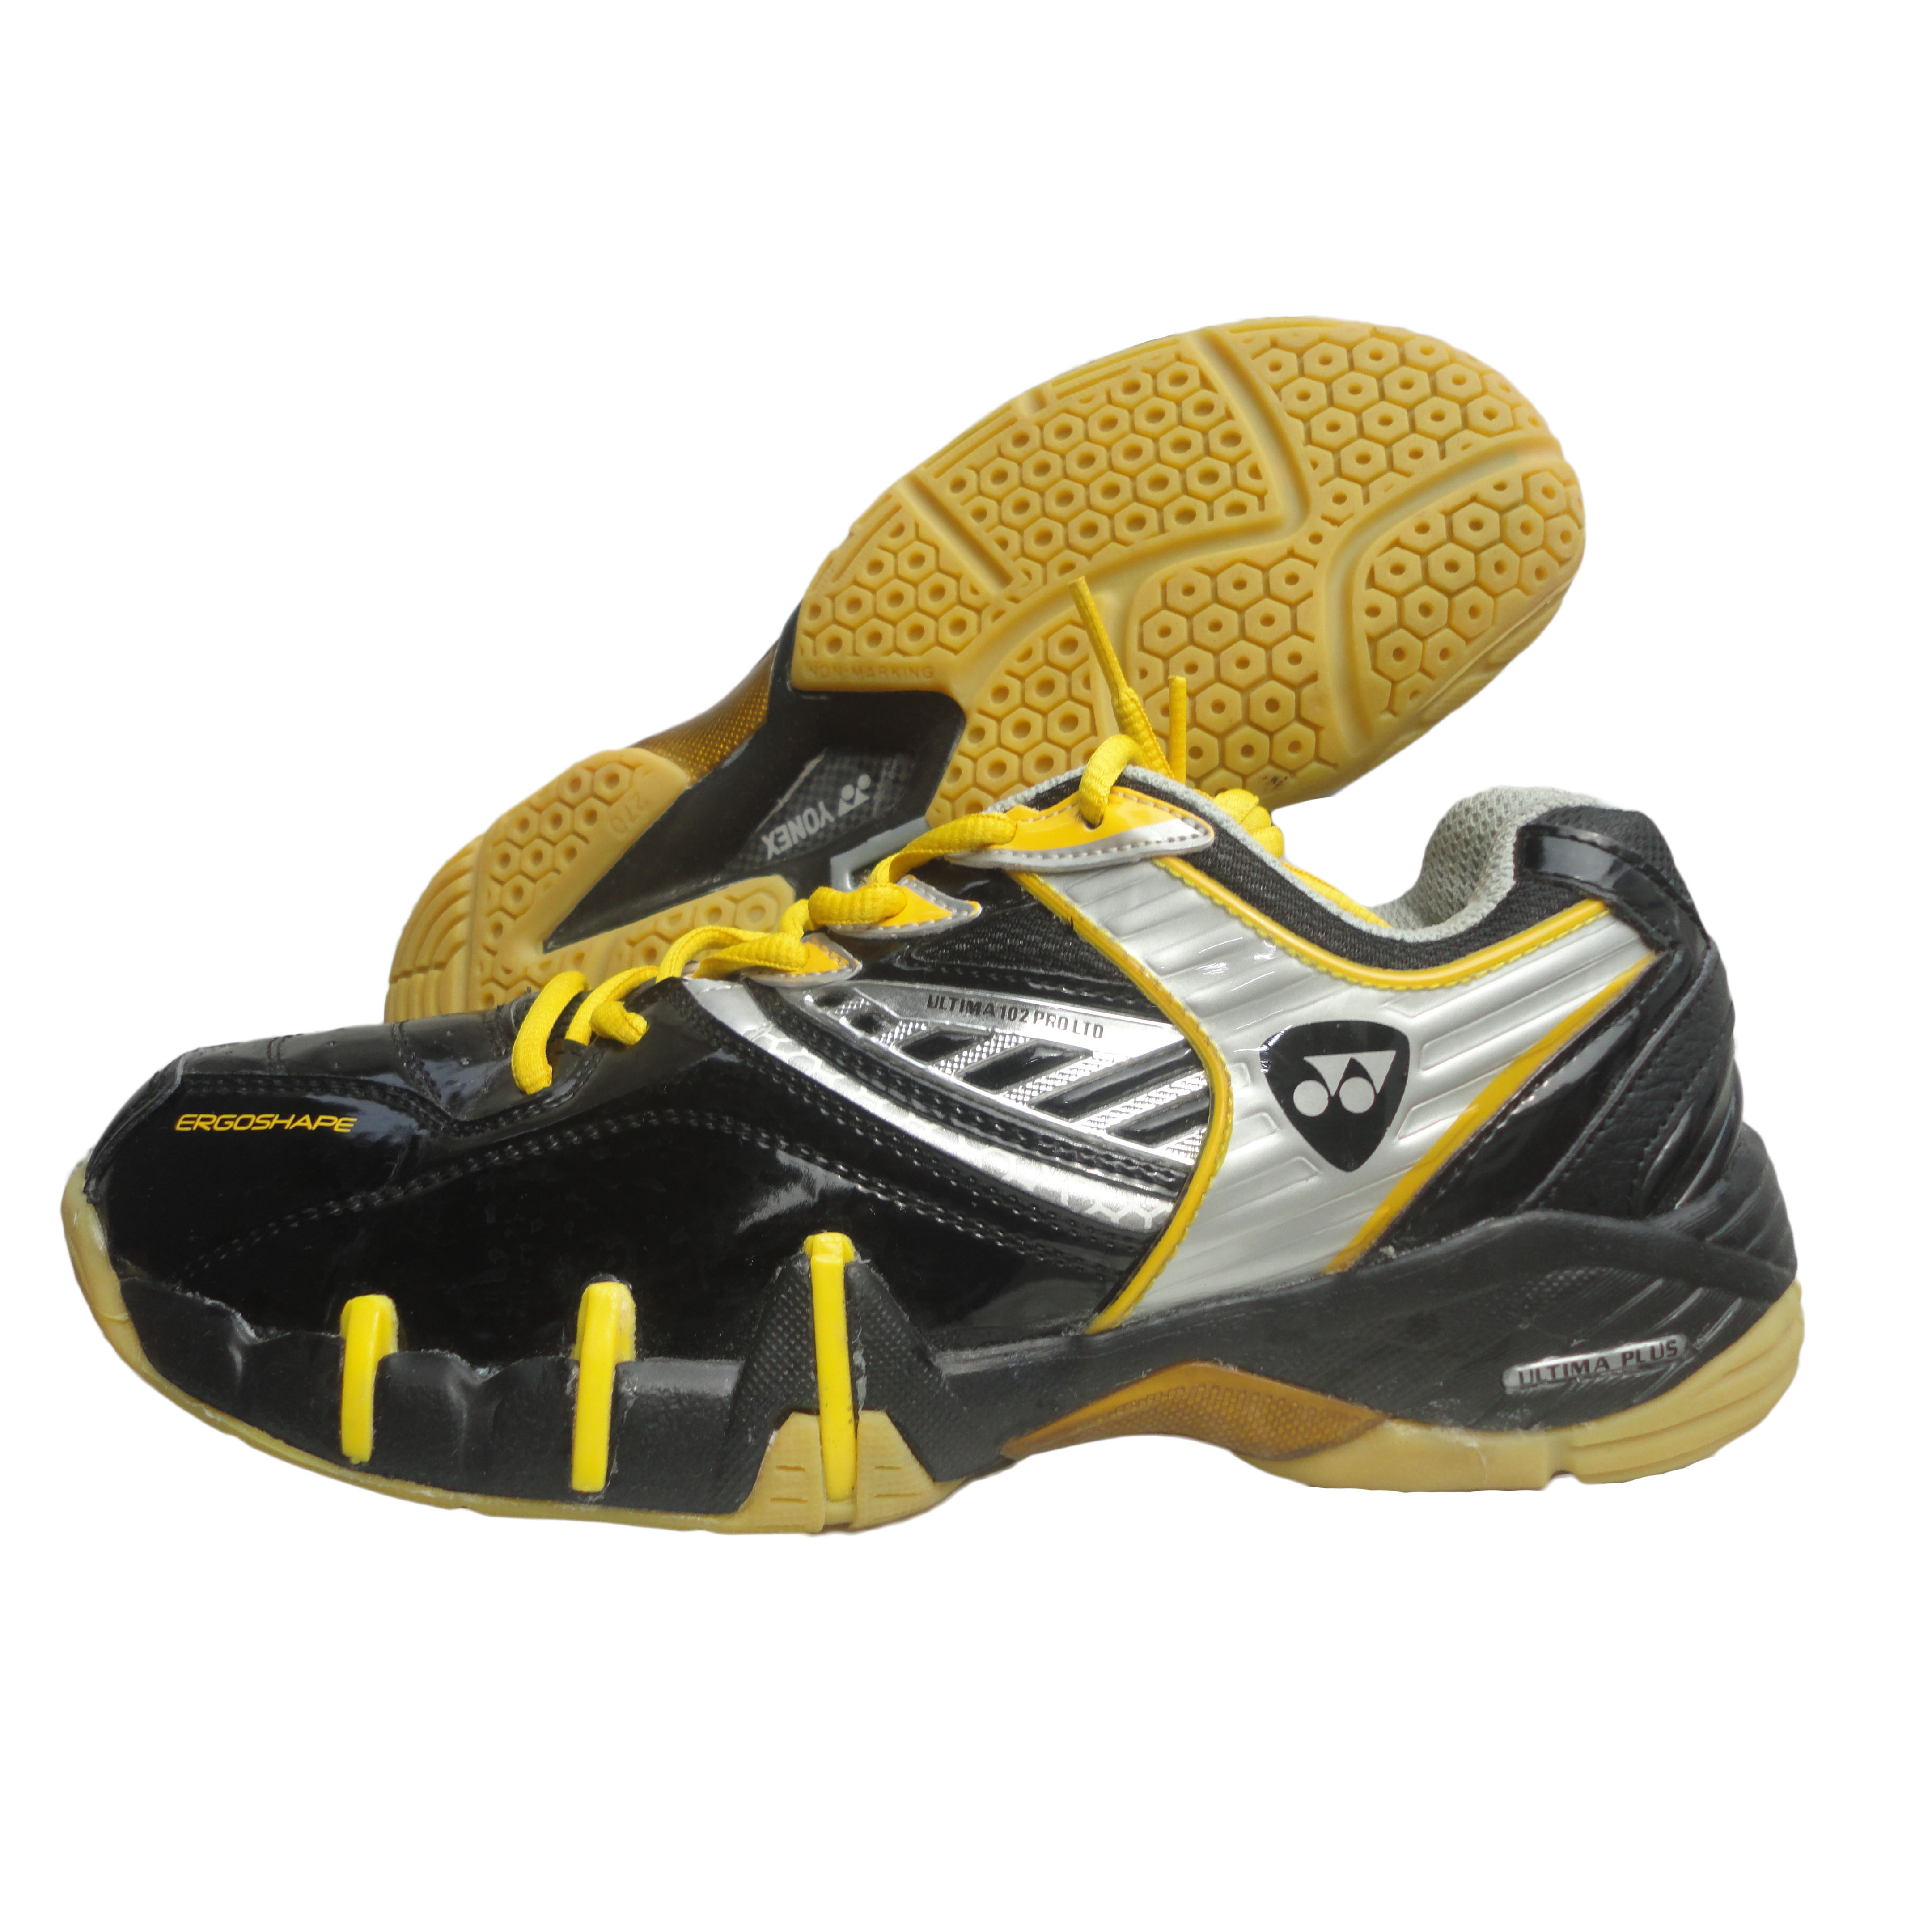 Yonex Badminton Shoes ULTIMA 102